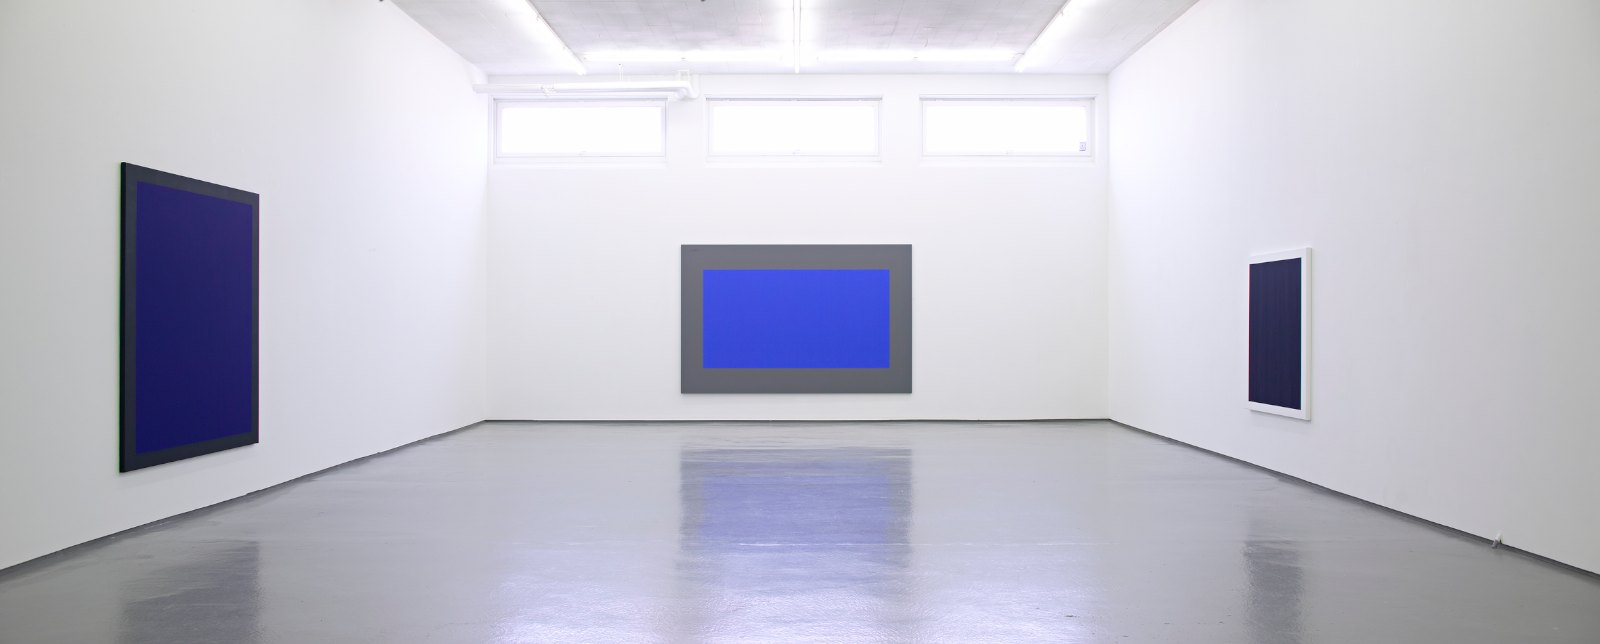 Installation view, Arne Malmedal, New Paintings, Galleri Riis, Oslo, 2007